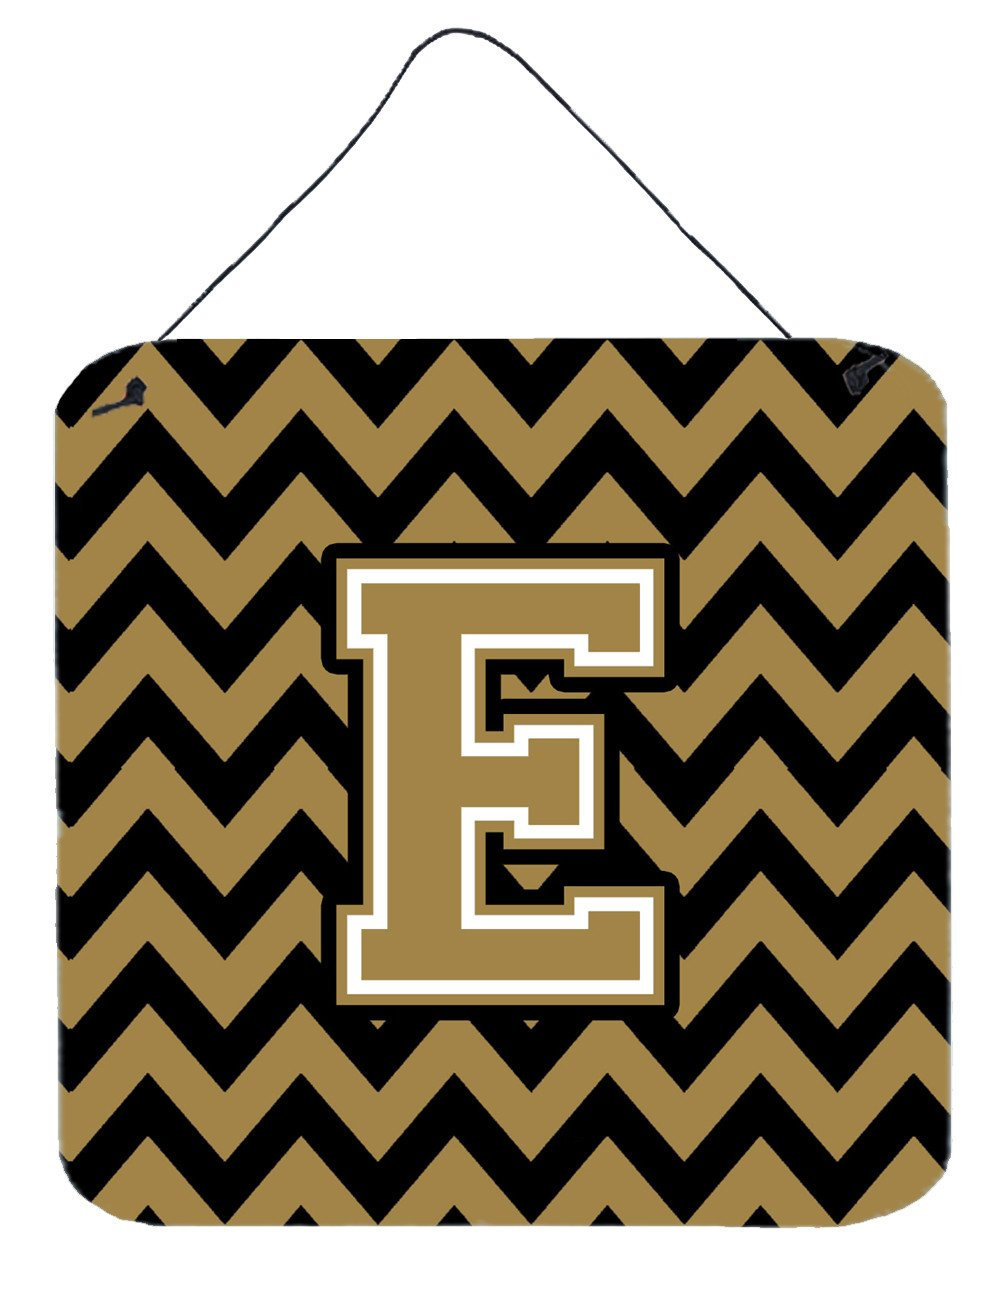 Letter E Chevron Black and Gold  Wall or Door Hanging Prints CJ1050-EDS66 by Caroline's Treasures